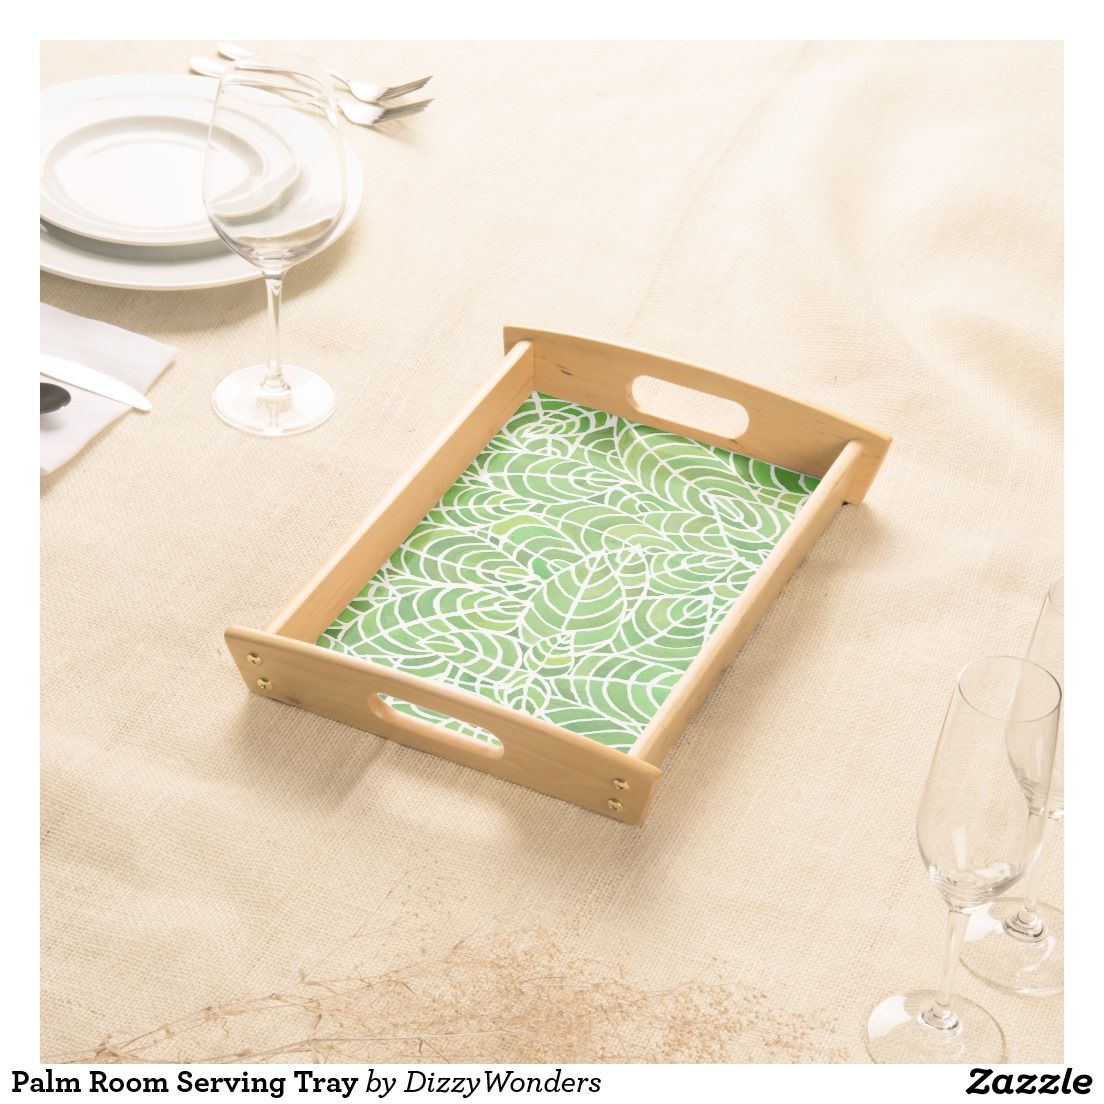 Palm Room Serving Tray - A hand painted watercolour design inspired by the Palm Room, Kibble Palace in Glasgow. The leaves are a fresh green - in tones of the 2017 Pantone of the Year - Greenery. This would be great to brighten interiors, bringing the outdoors in. Serve breakfast in bed for a fresh start to the day.